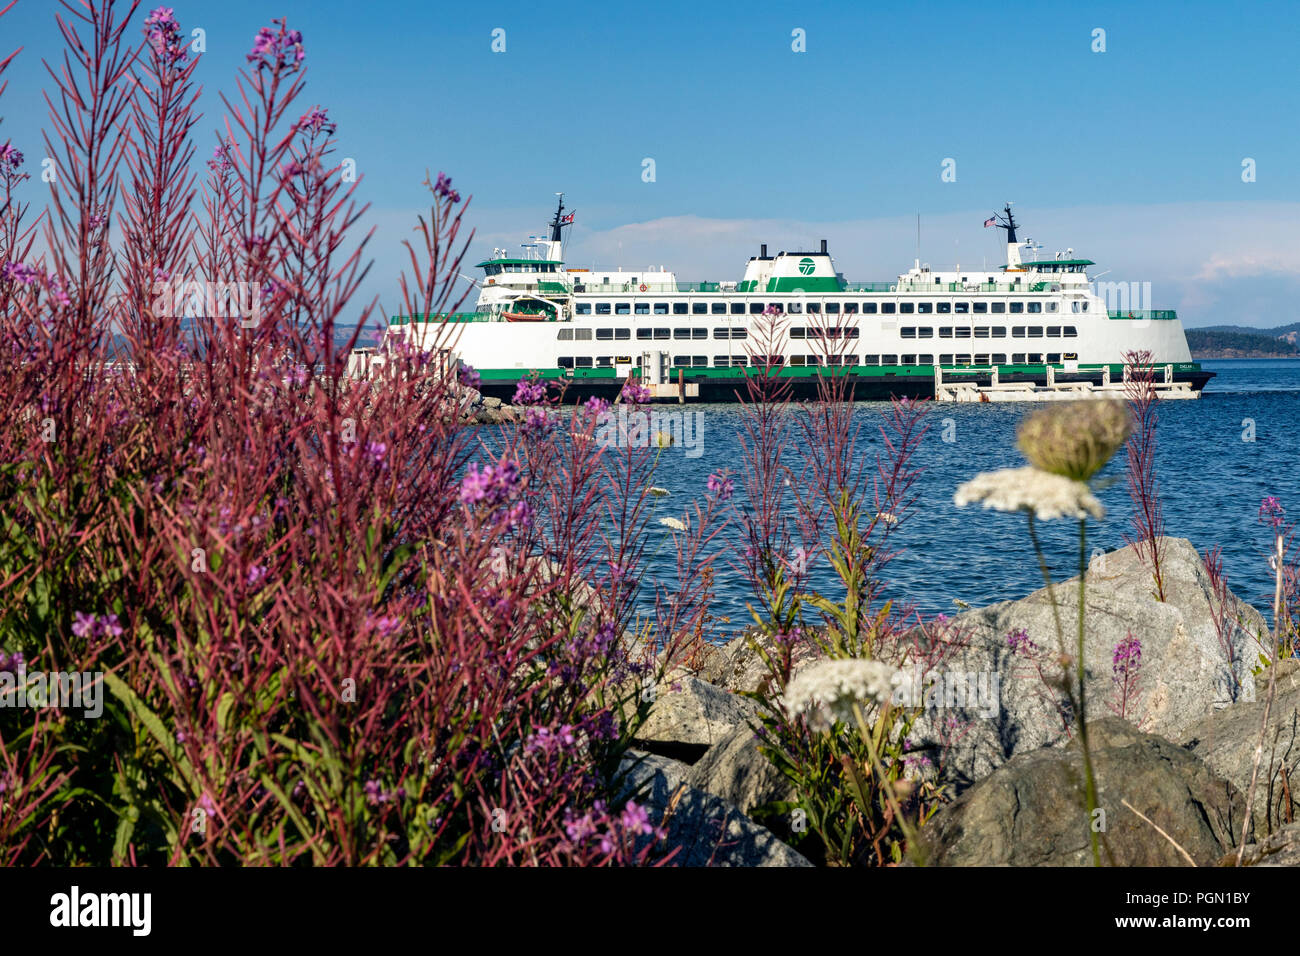 Washington State Ferry (Chelan) at Sidney Ferry Terminal, Vancouver Island, British Columbia, Canada - Stock Image